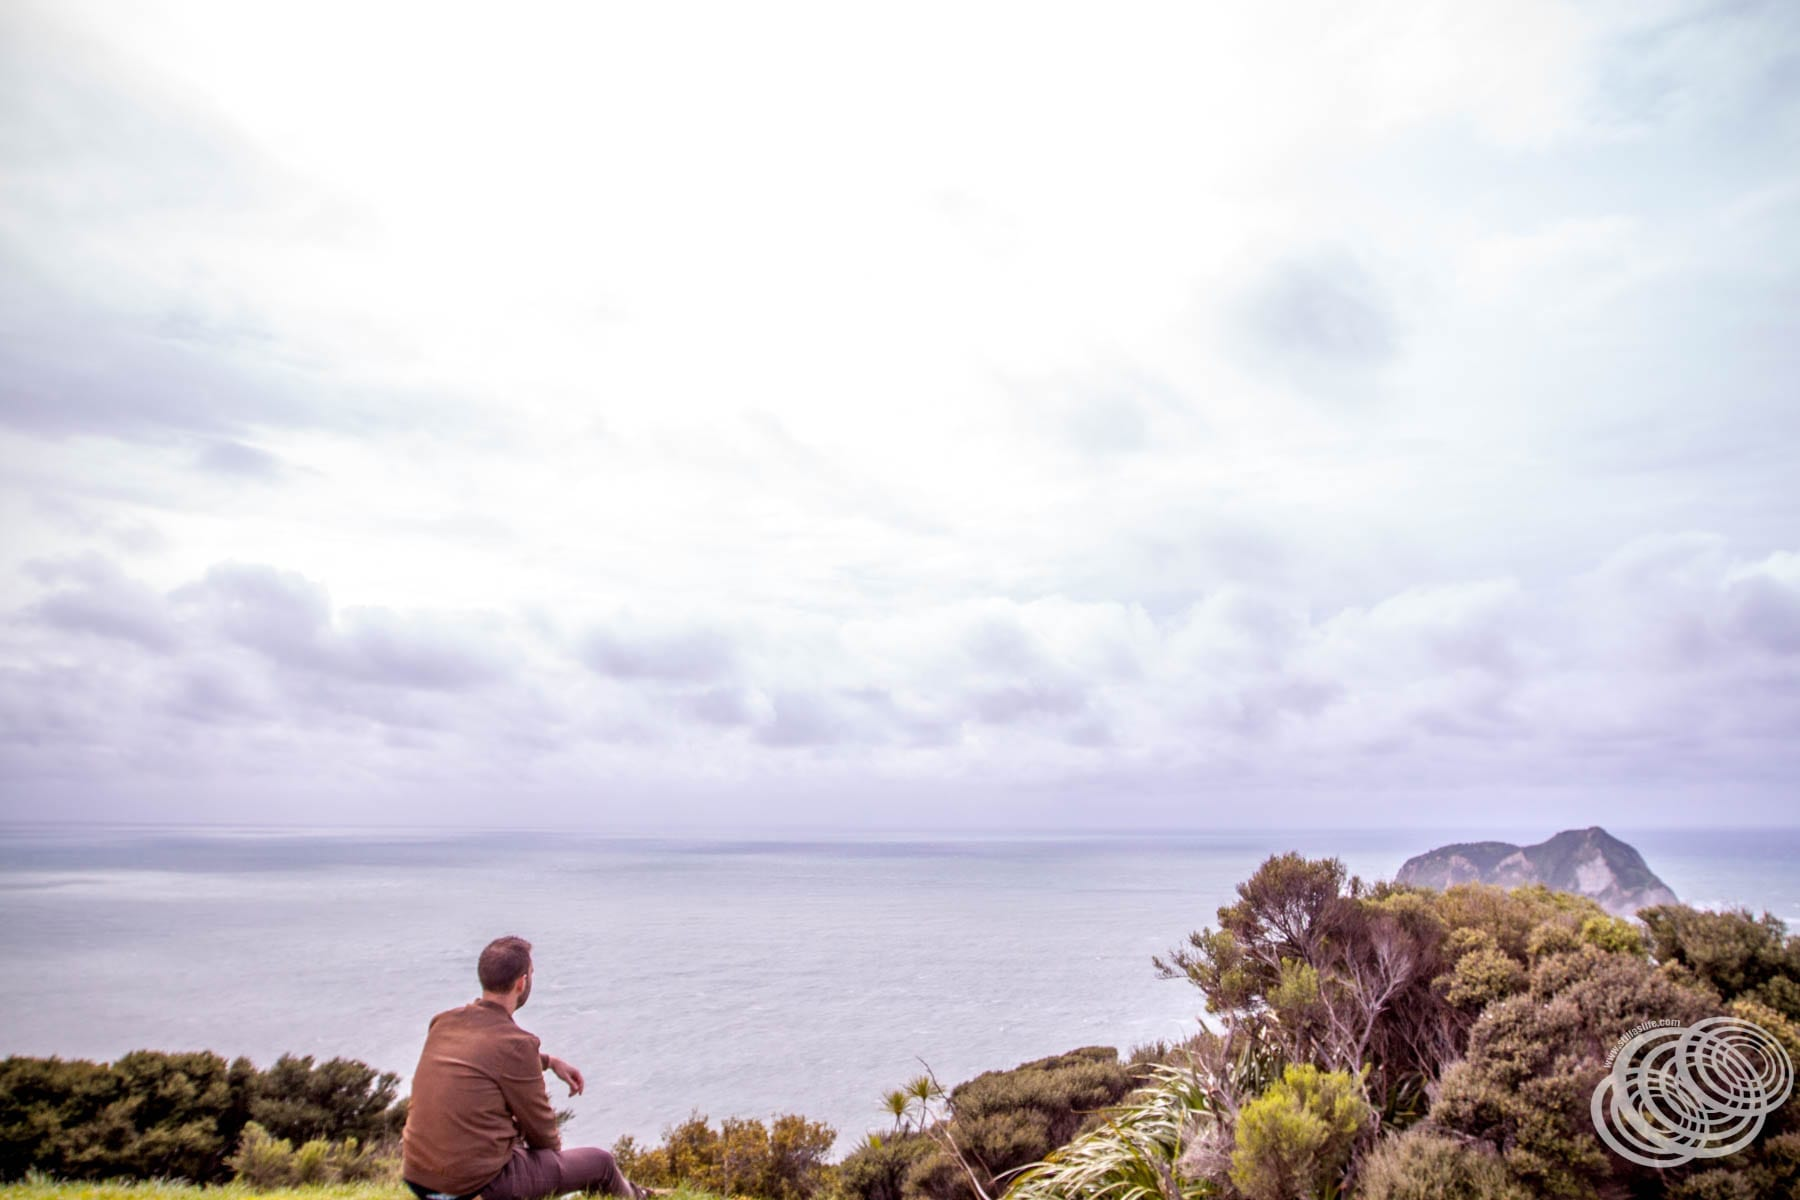 The view to East Island from East Cape Lighthouse